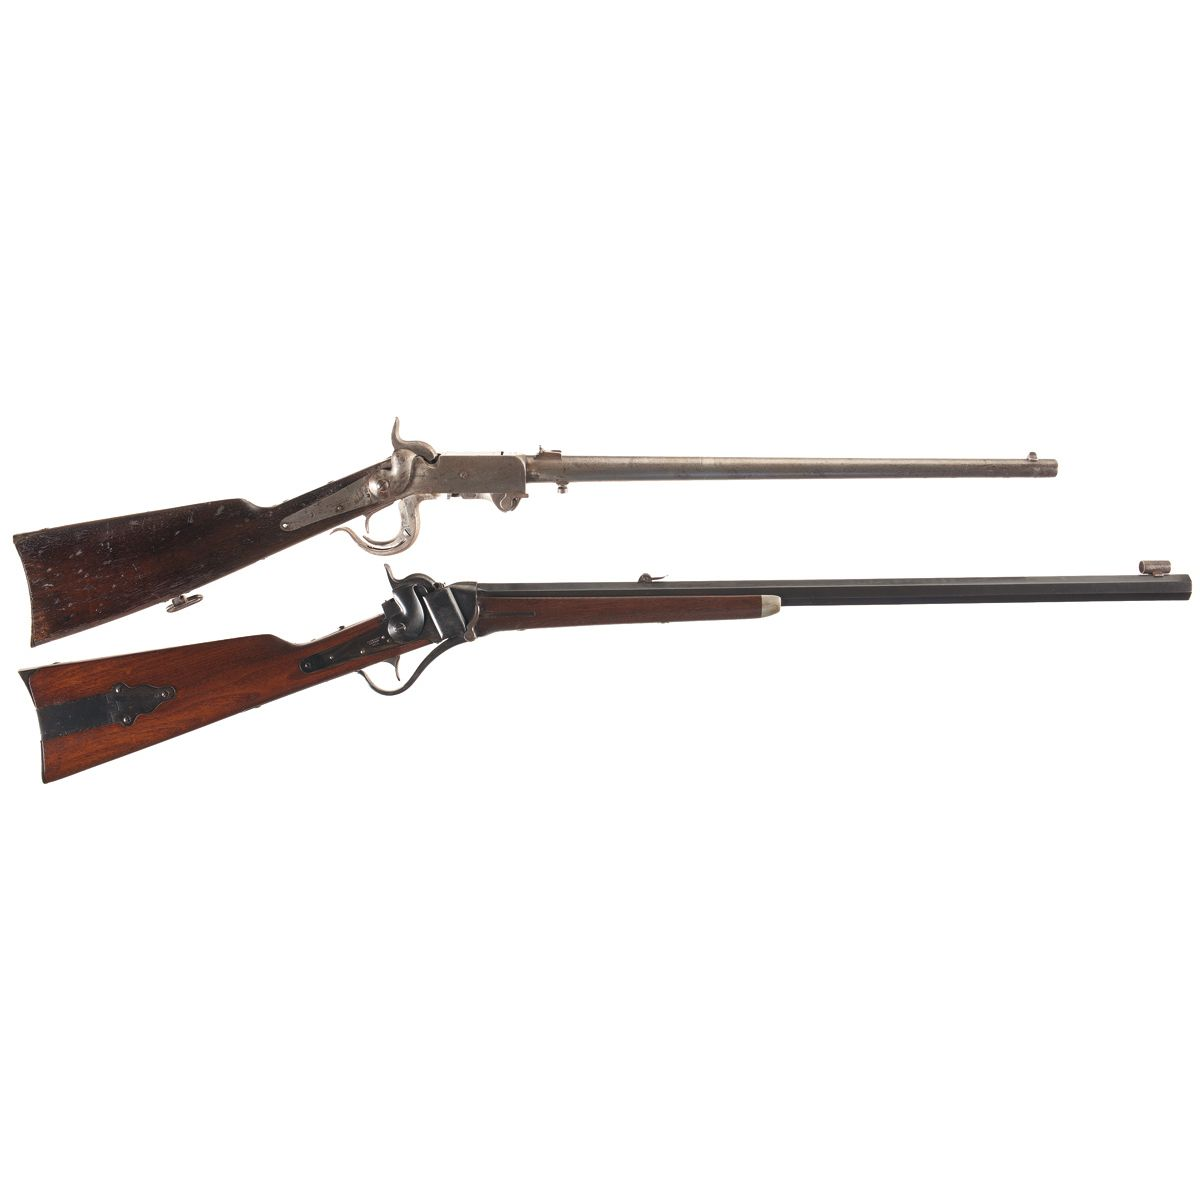 civil war weapons The american civil war (also known by other names) railroads, the telegraph, steamships and iron-clad ships, and mass-produced weapons were employed extensively the mobilization of civilian factories, mines, shipyards, banks.